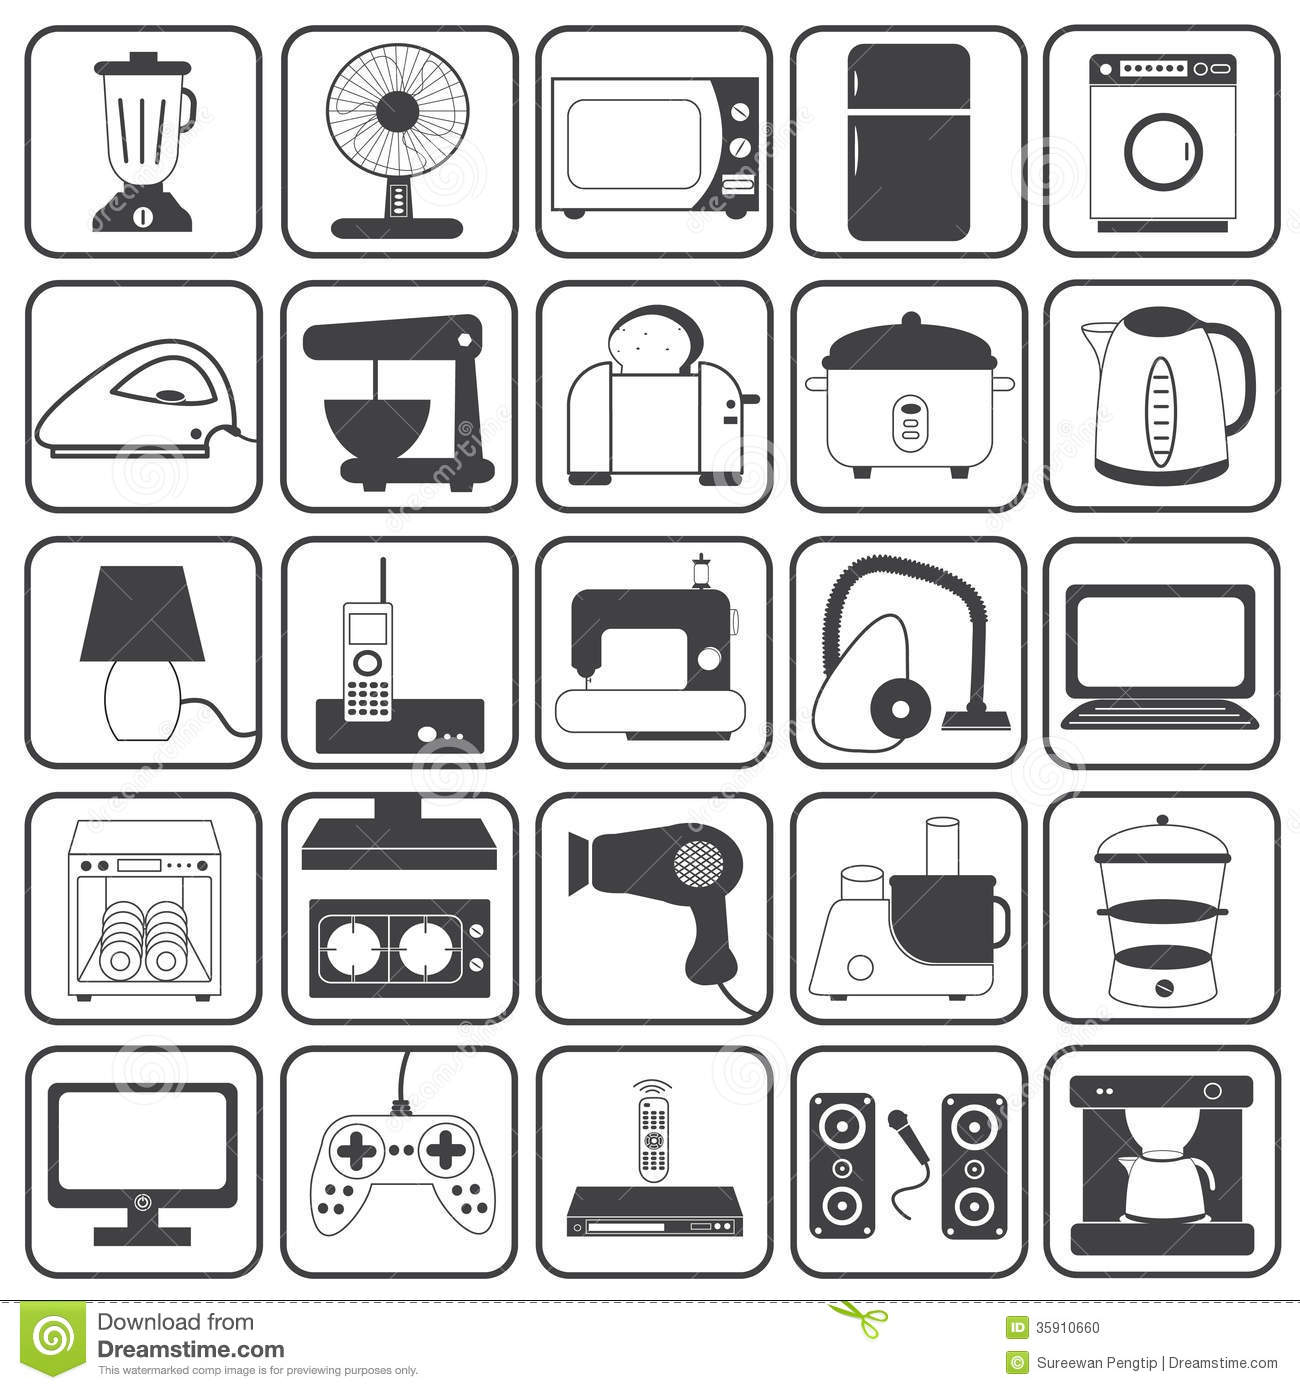 Home Appliances Clipart Free Download